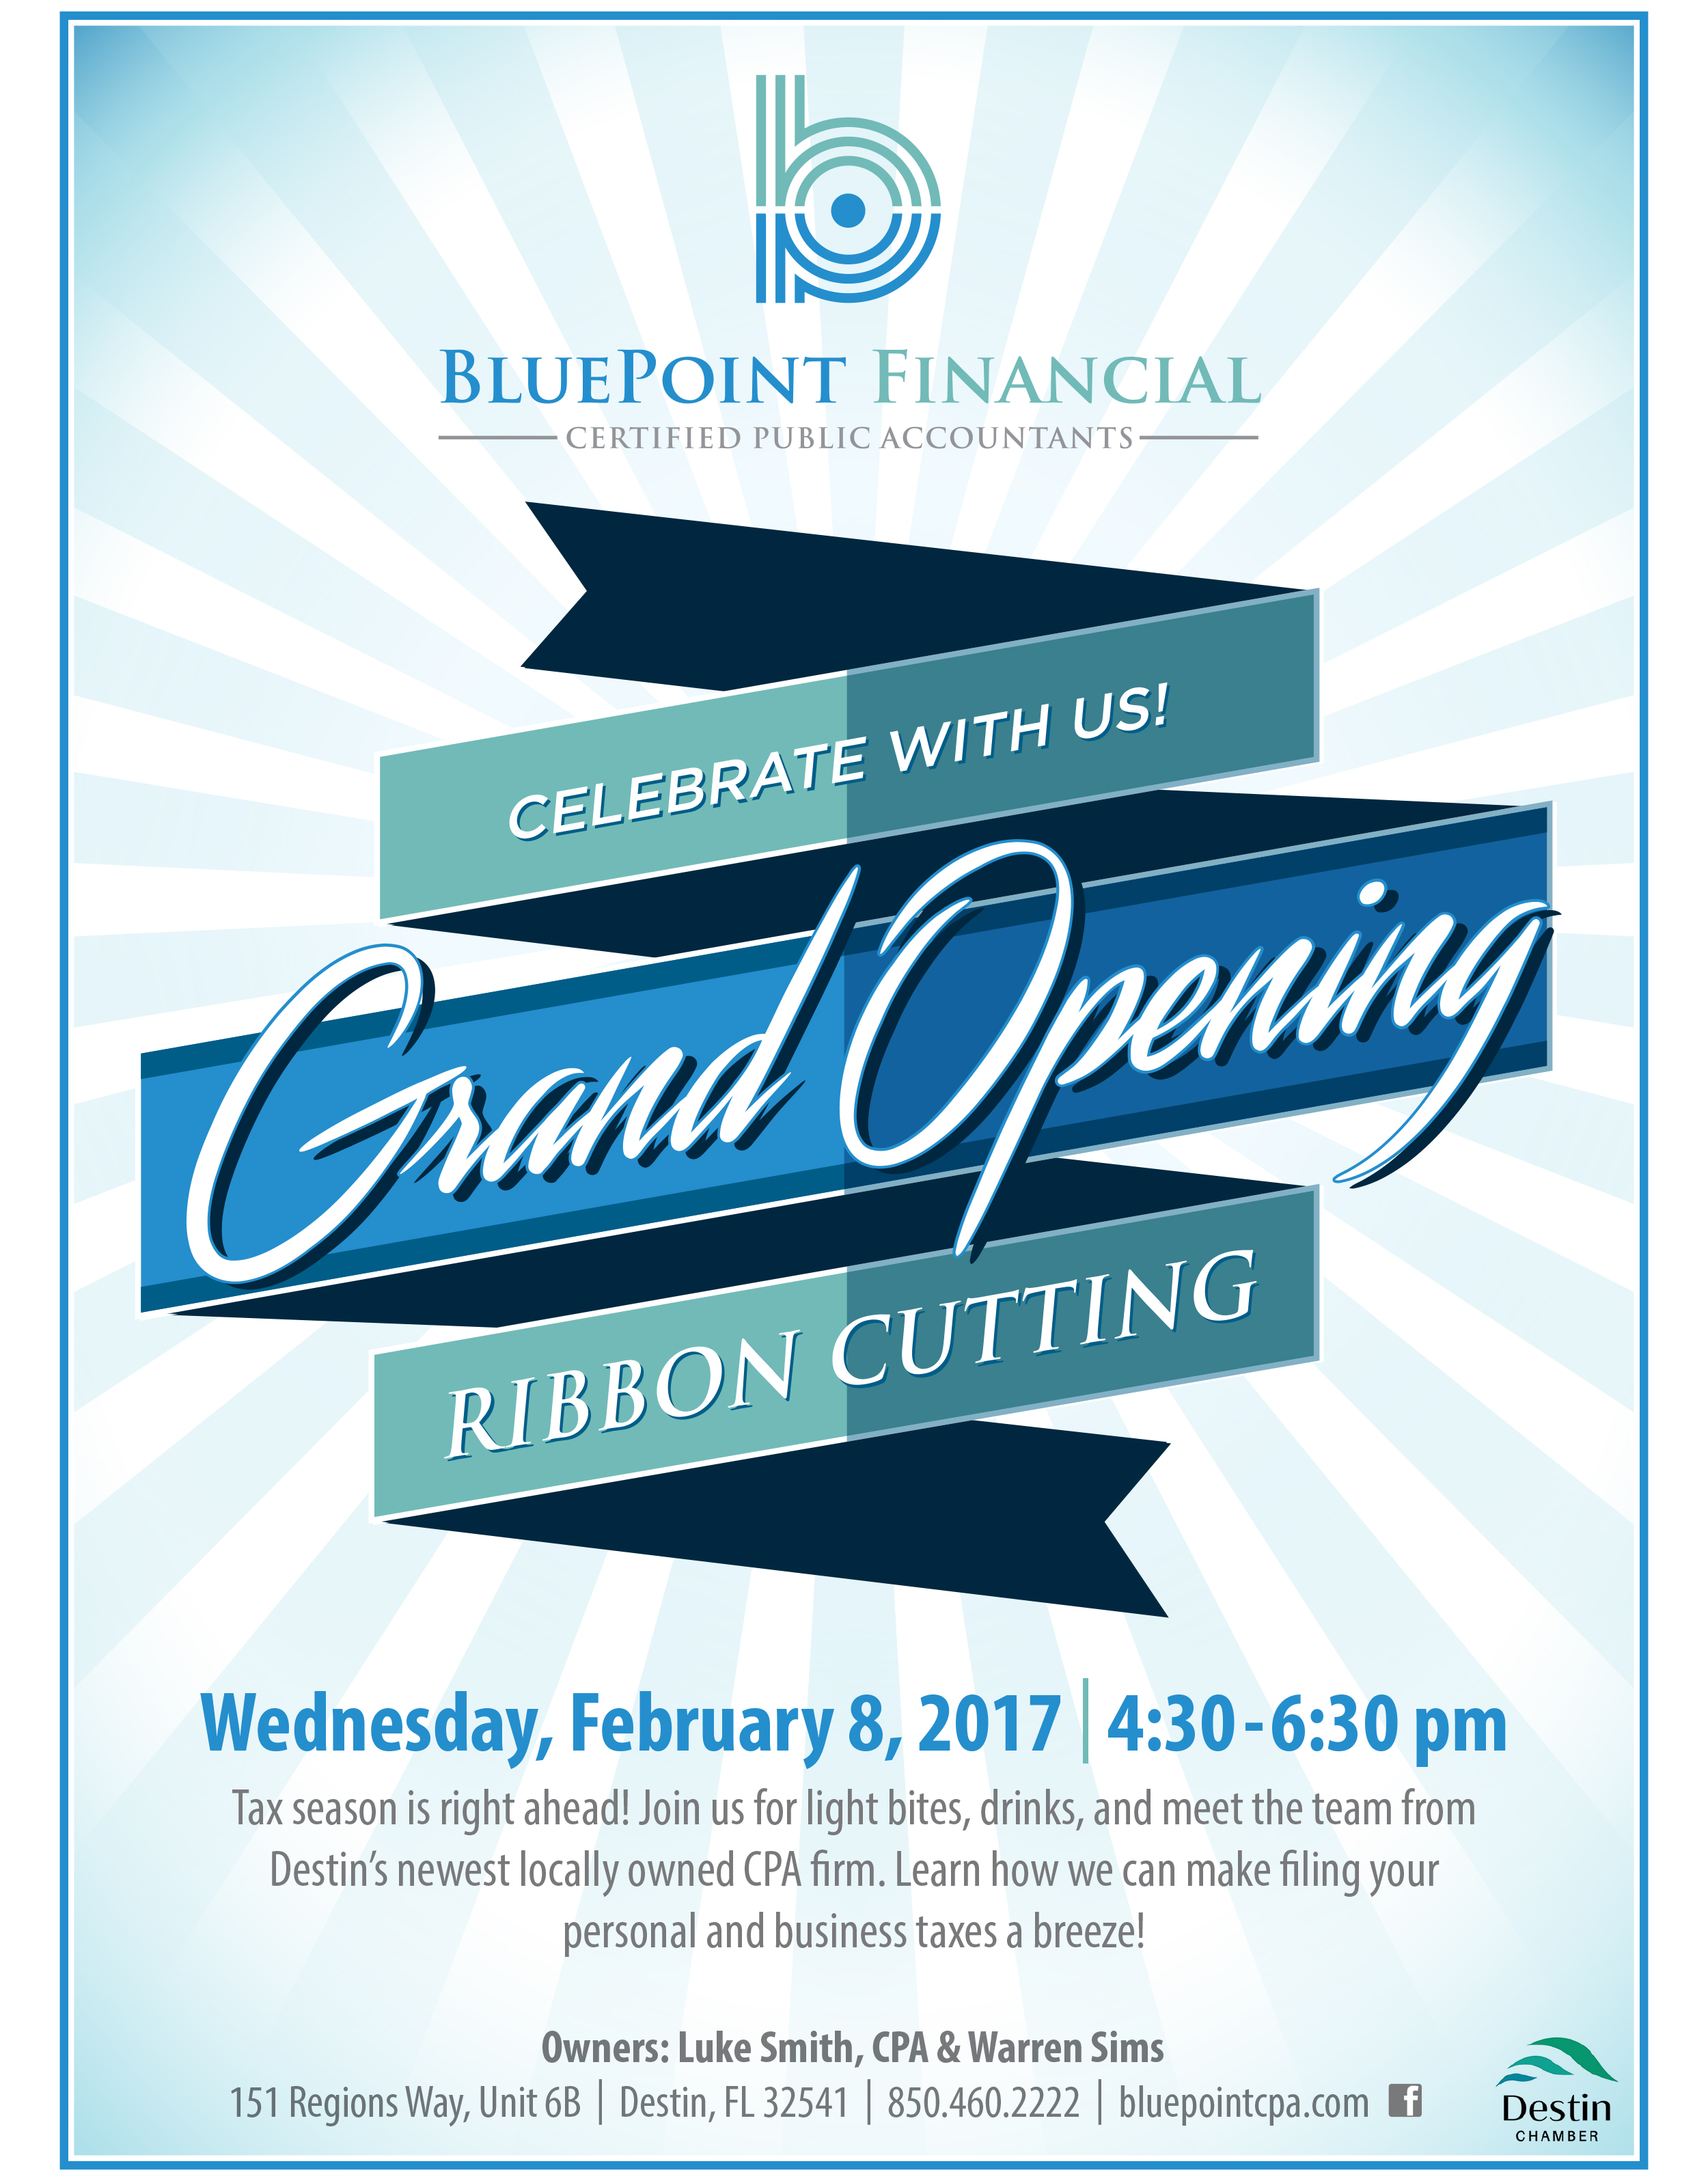 Bluepoint Financial